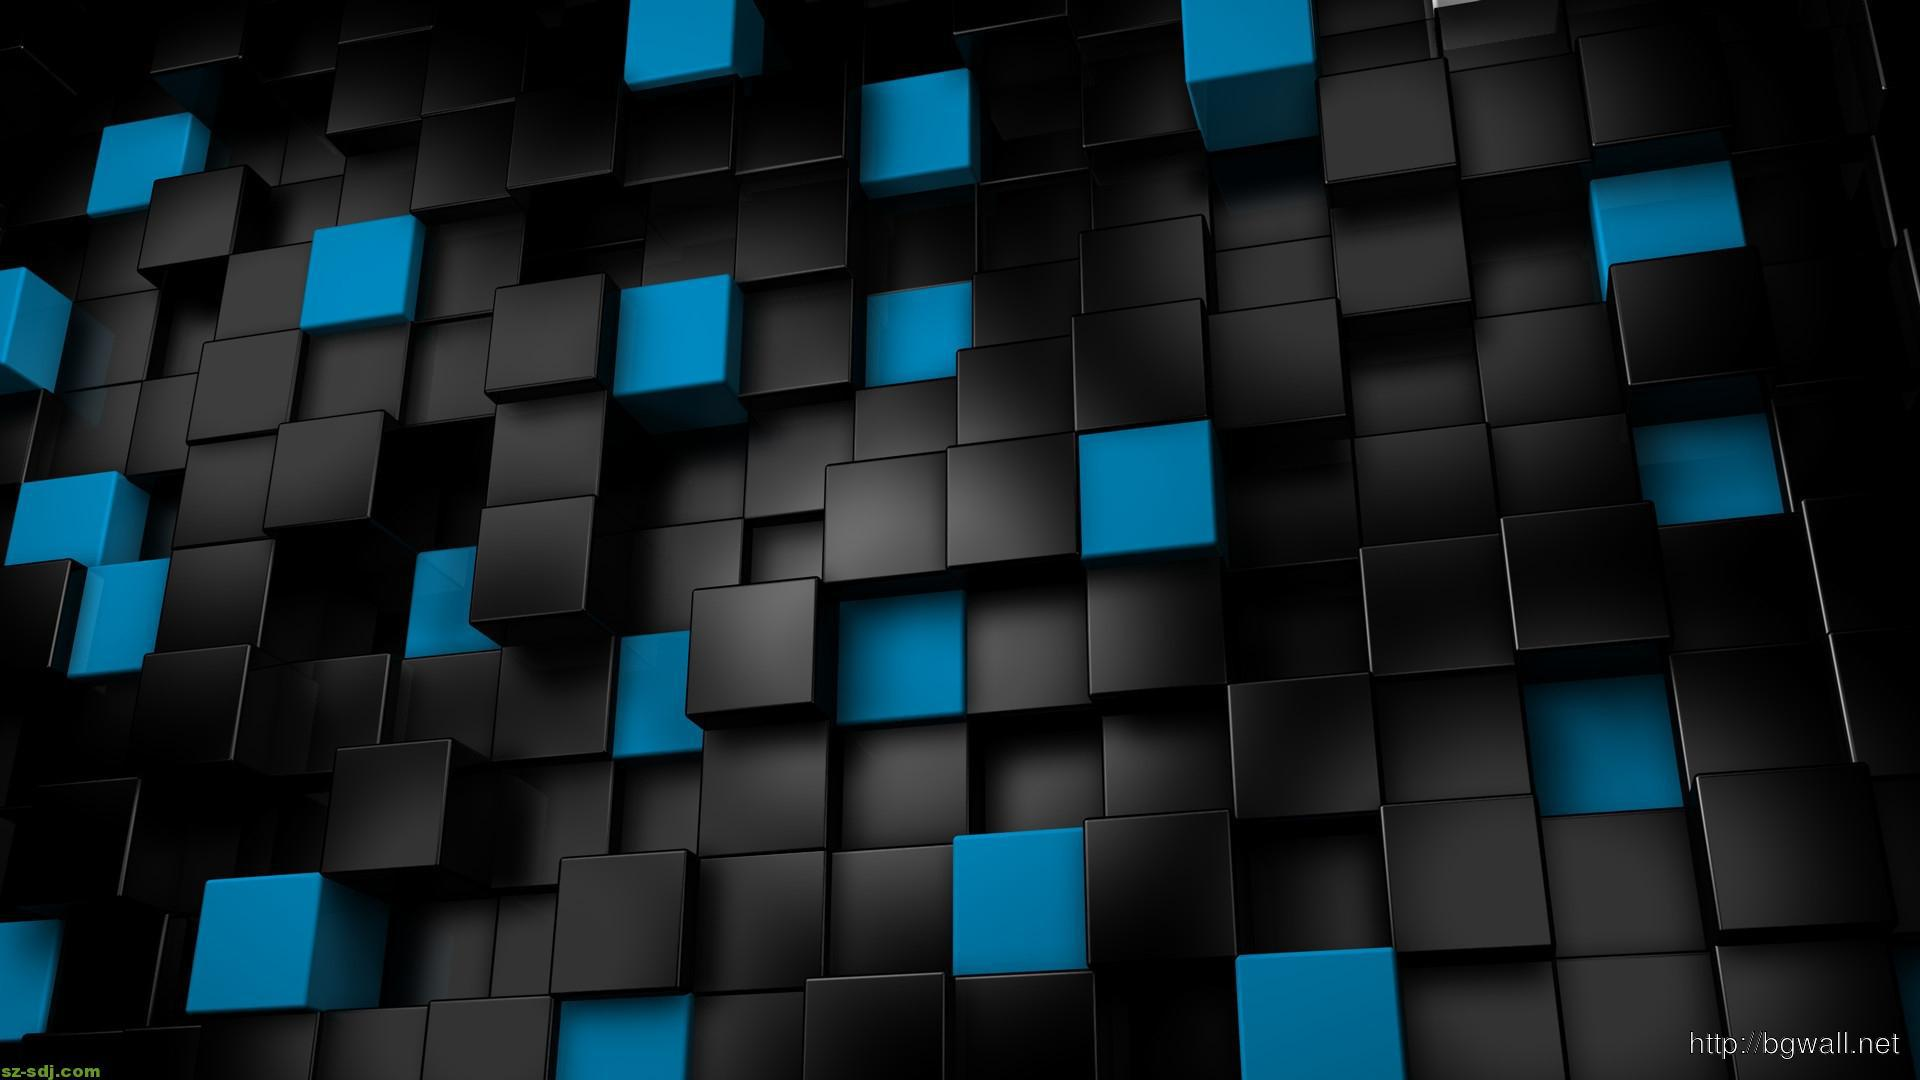 Black And Blue Box Wallpaper Hd – Background HD